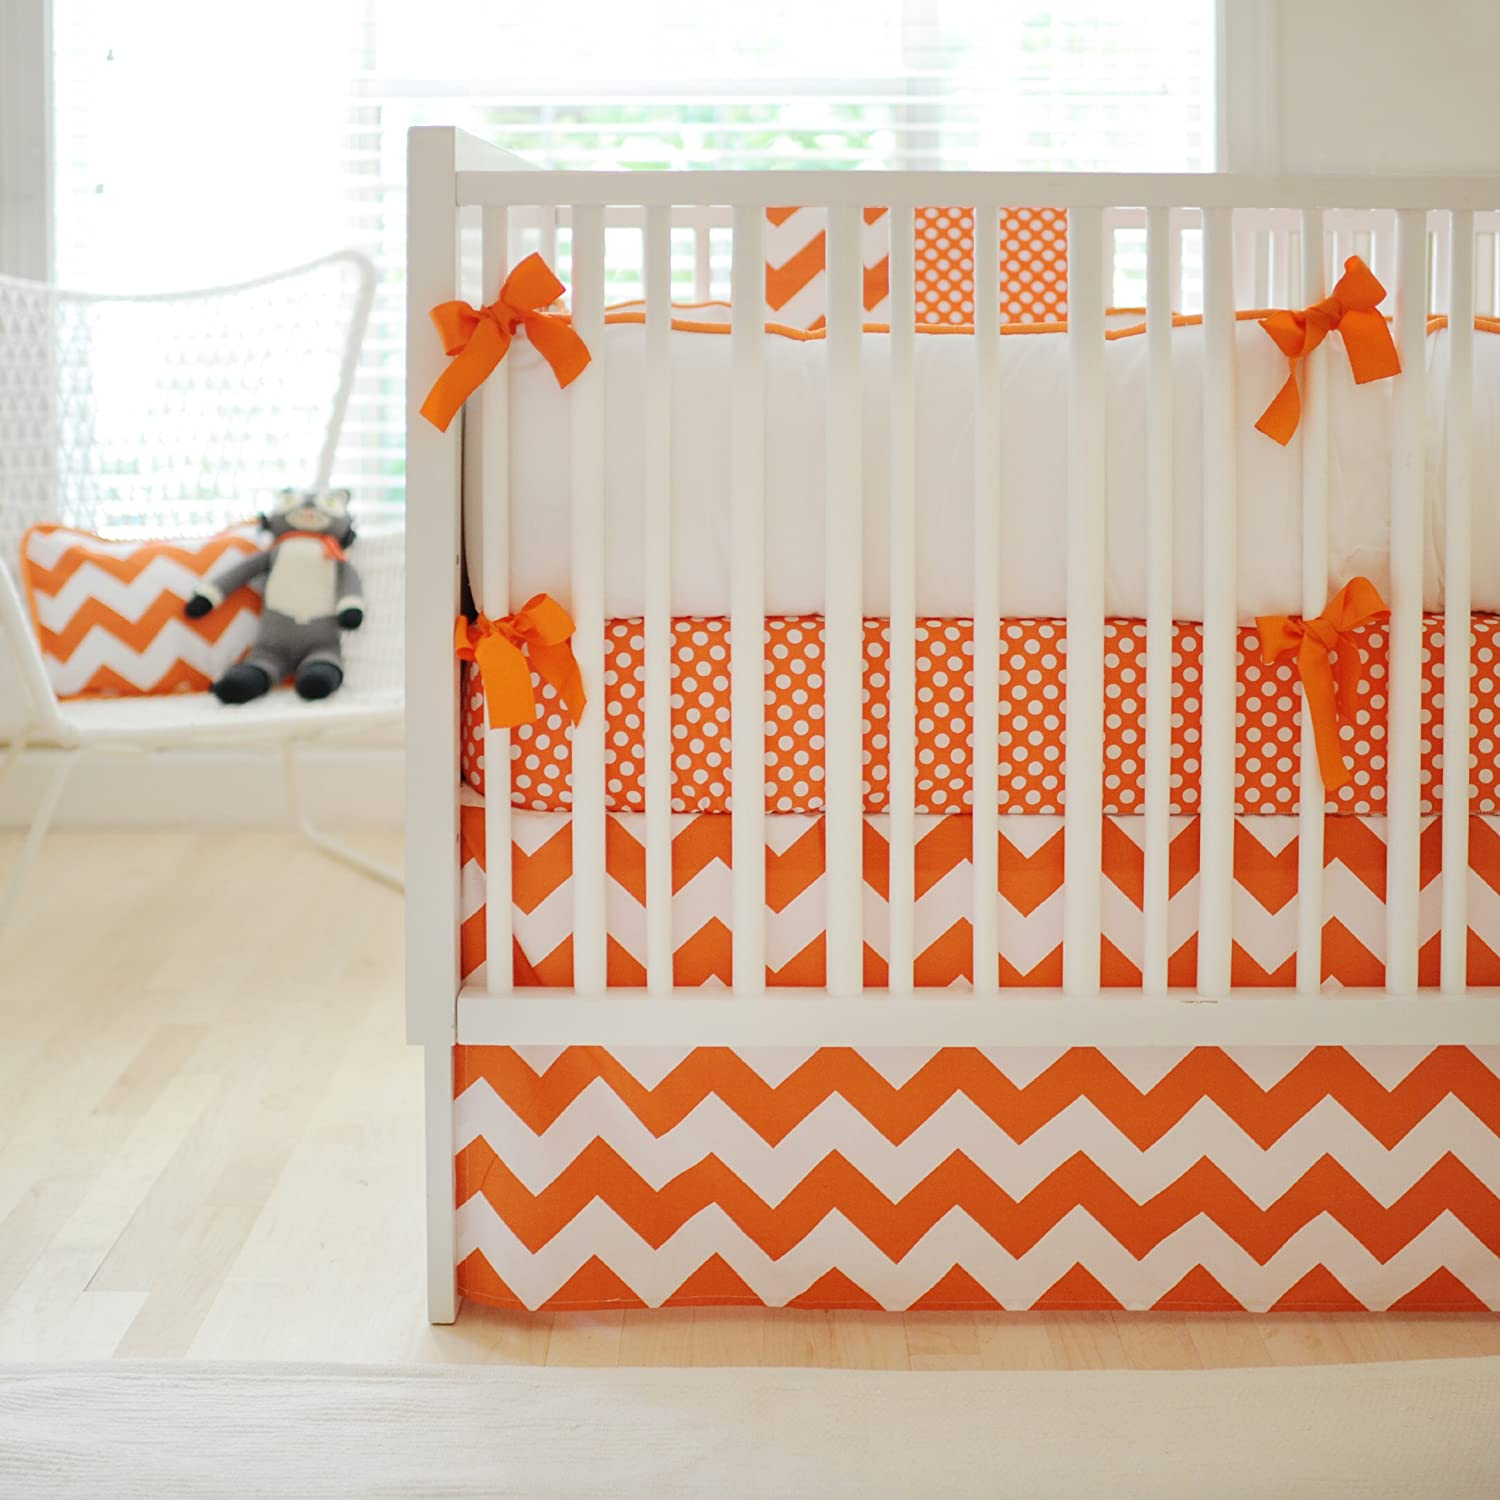 orange crib bumper pads  best baby crib inspiration - zig zag  piece crib bedding set in tangerine check price